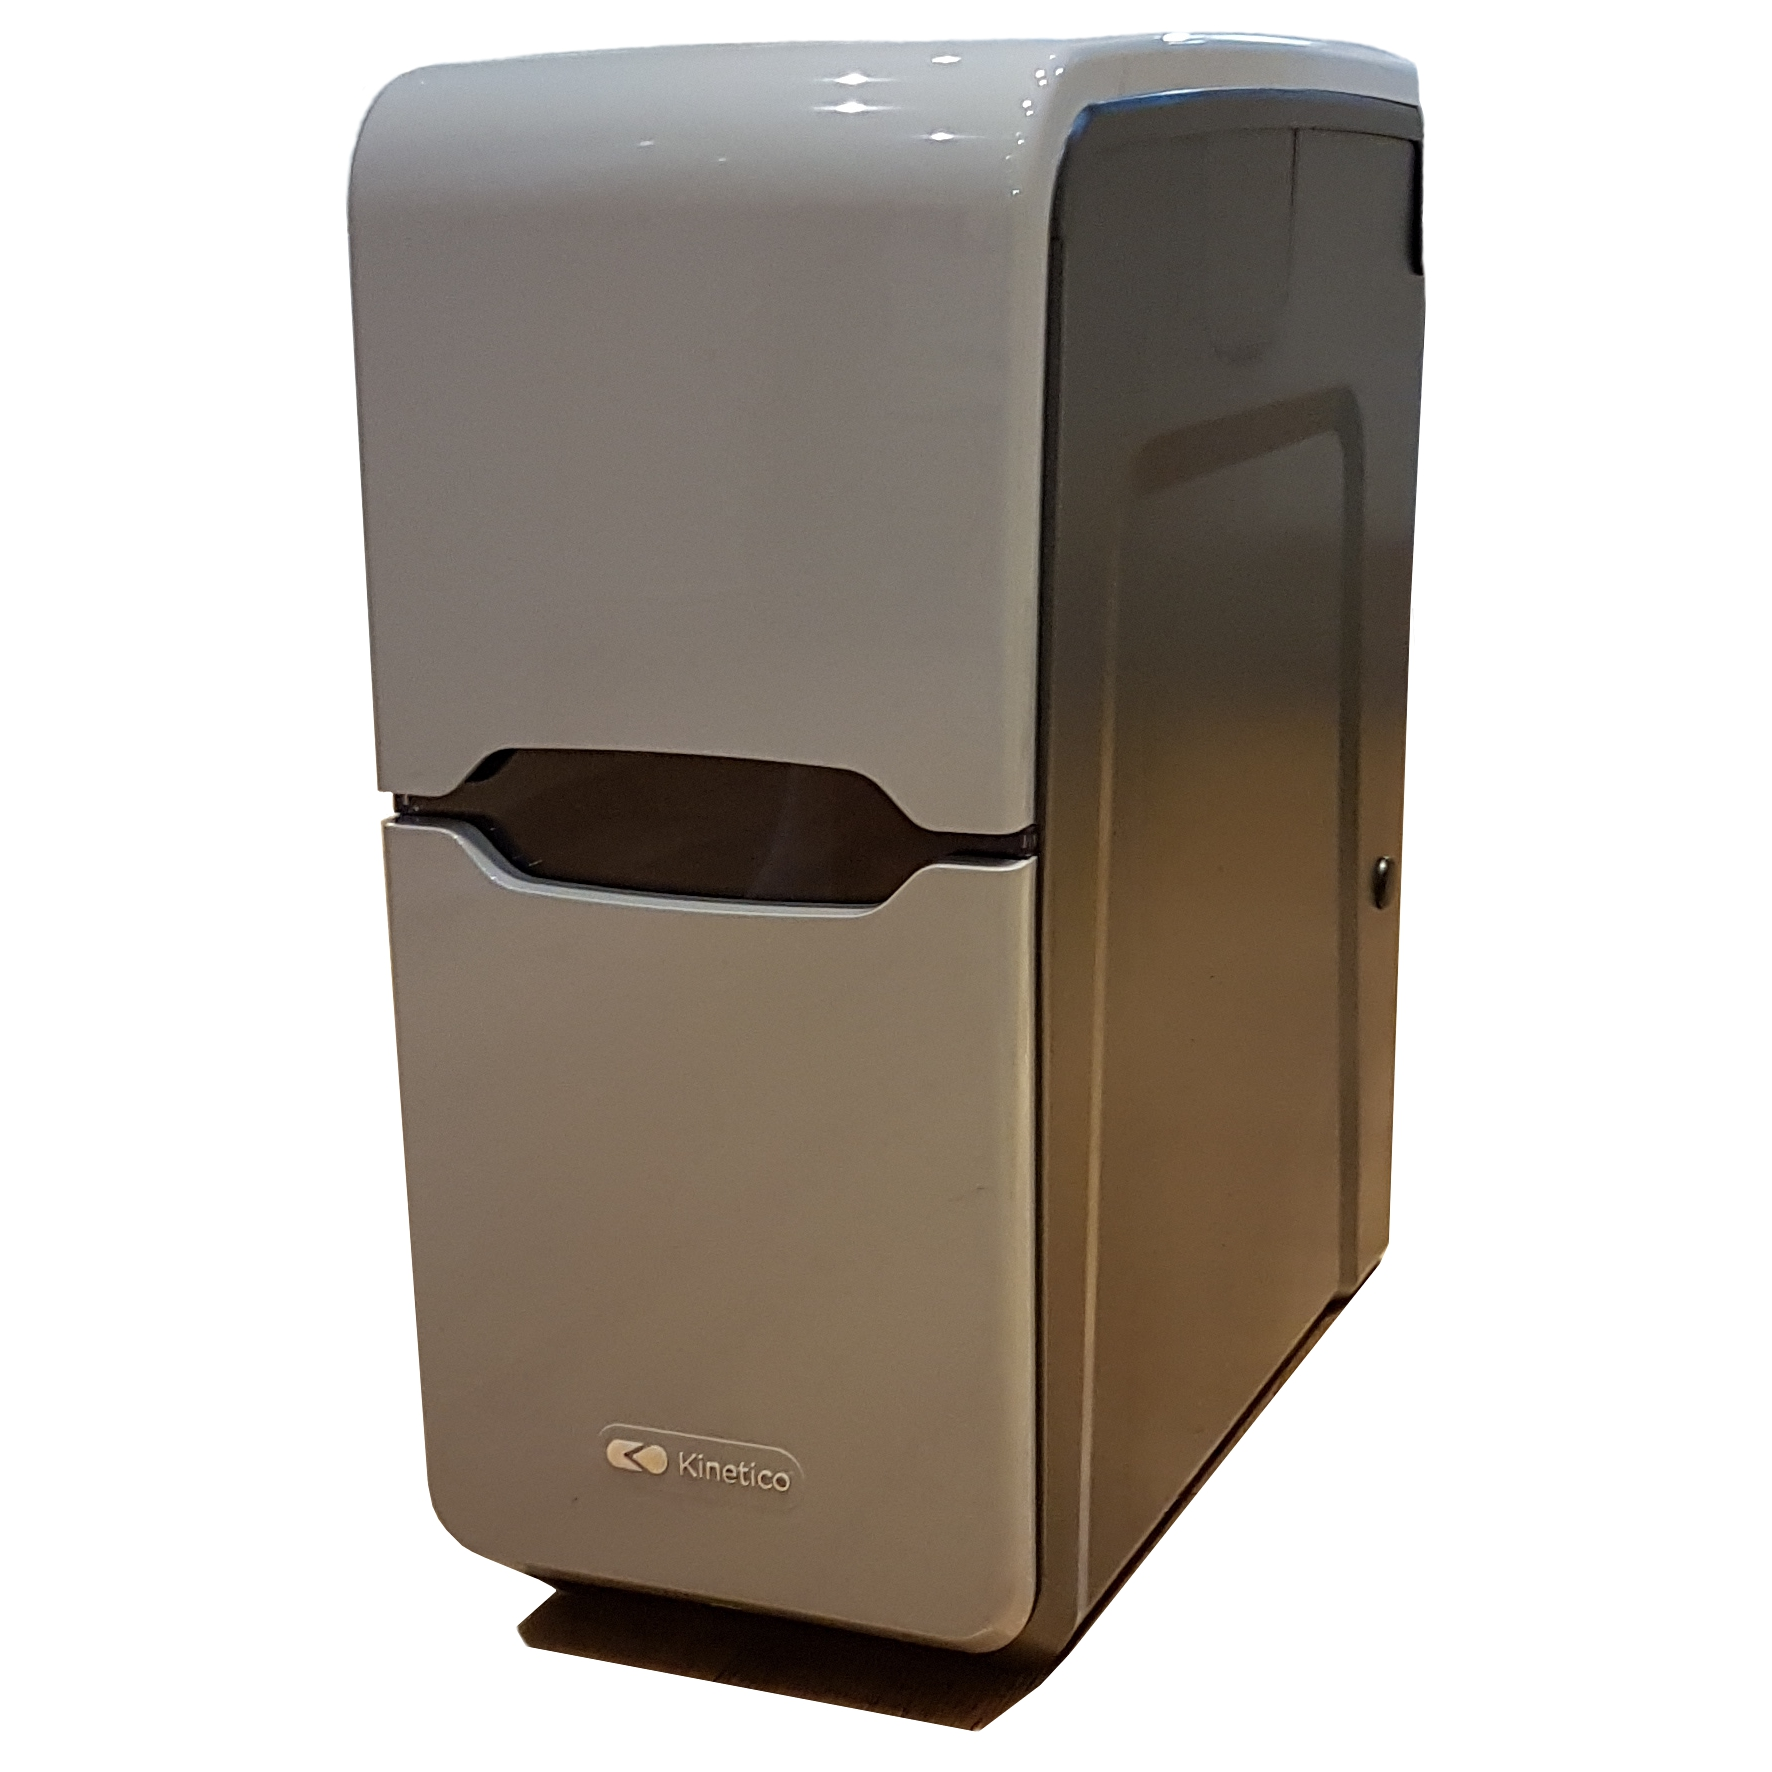 The Kinetico Premier water softener. Click for a quotation